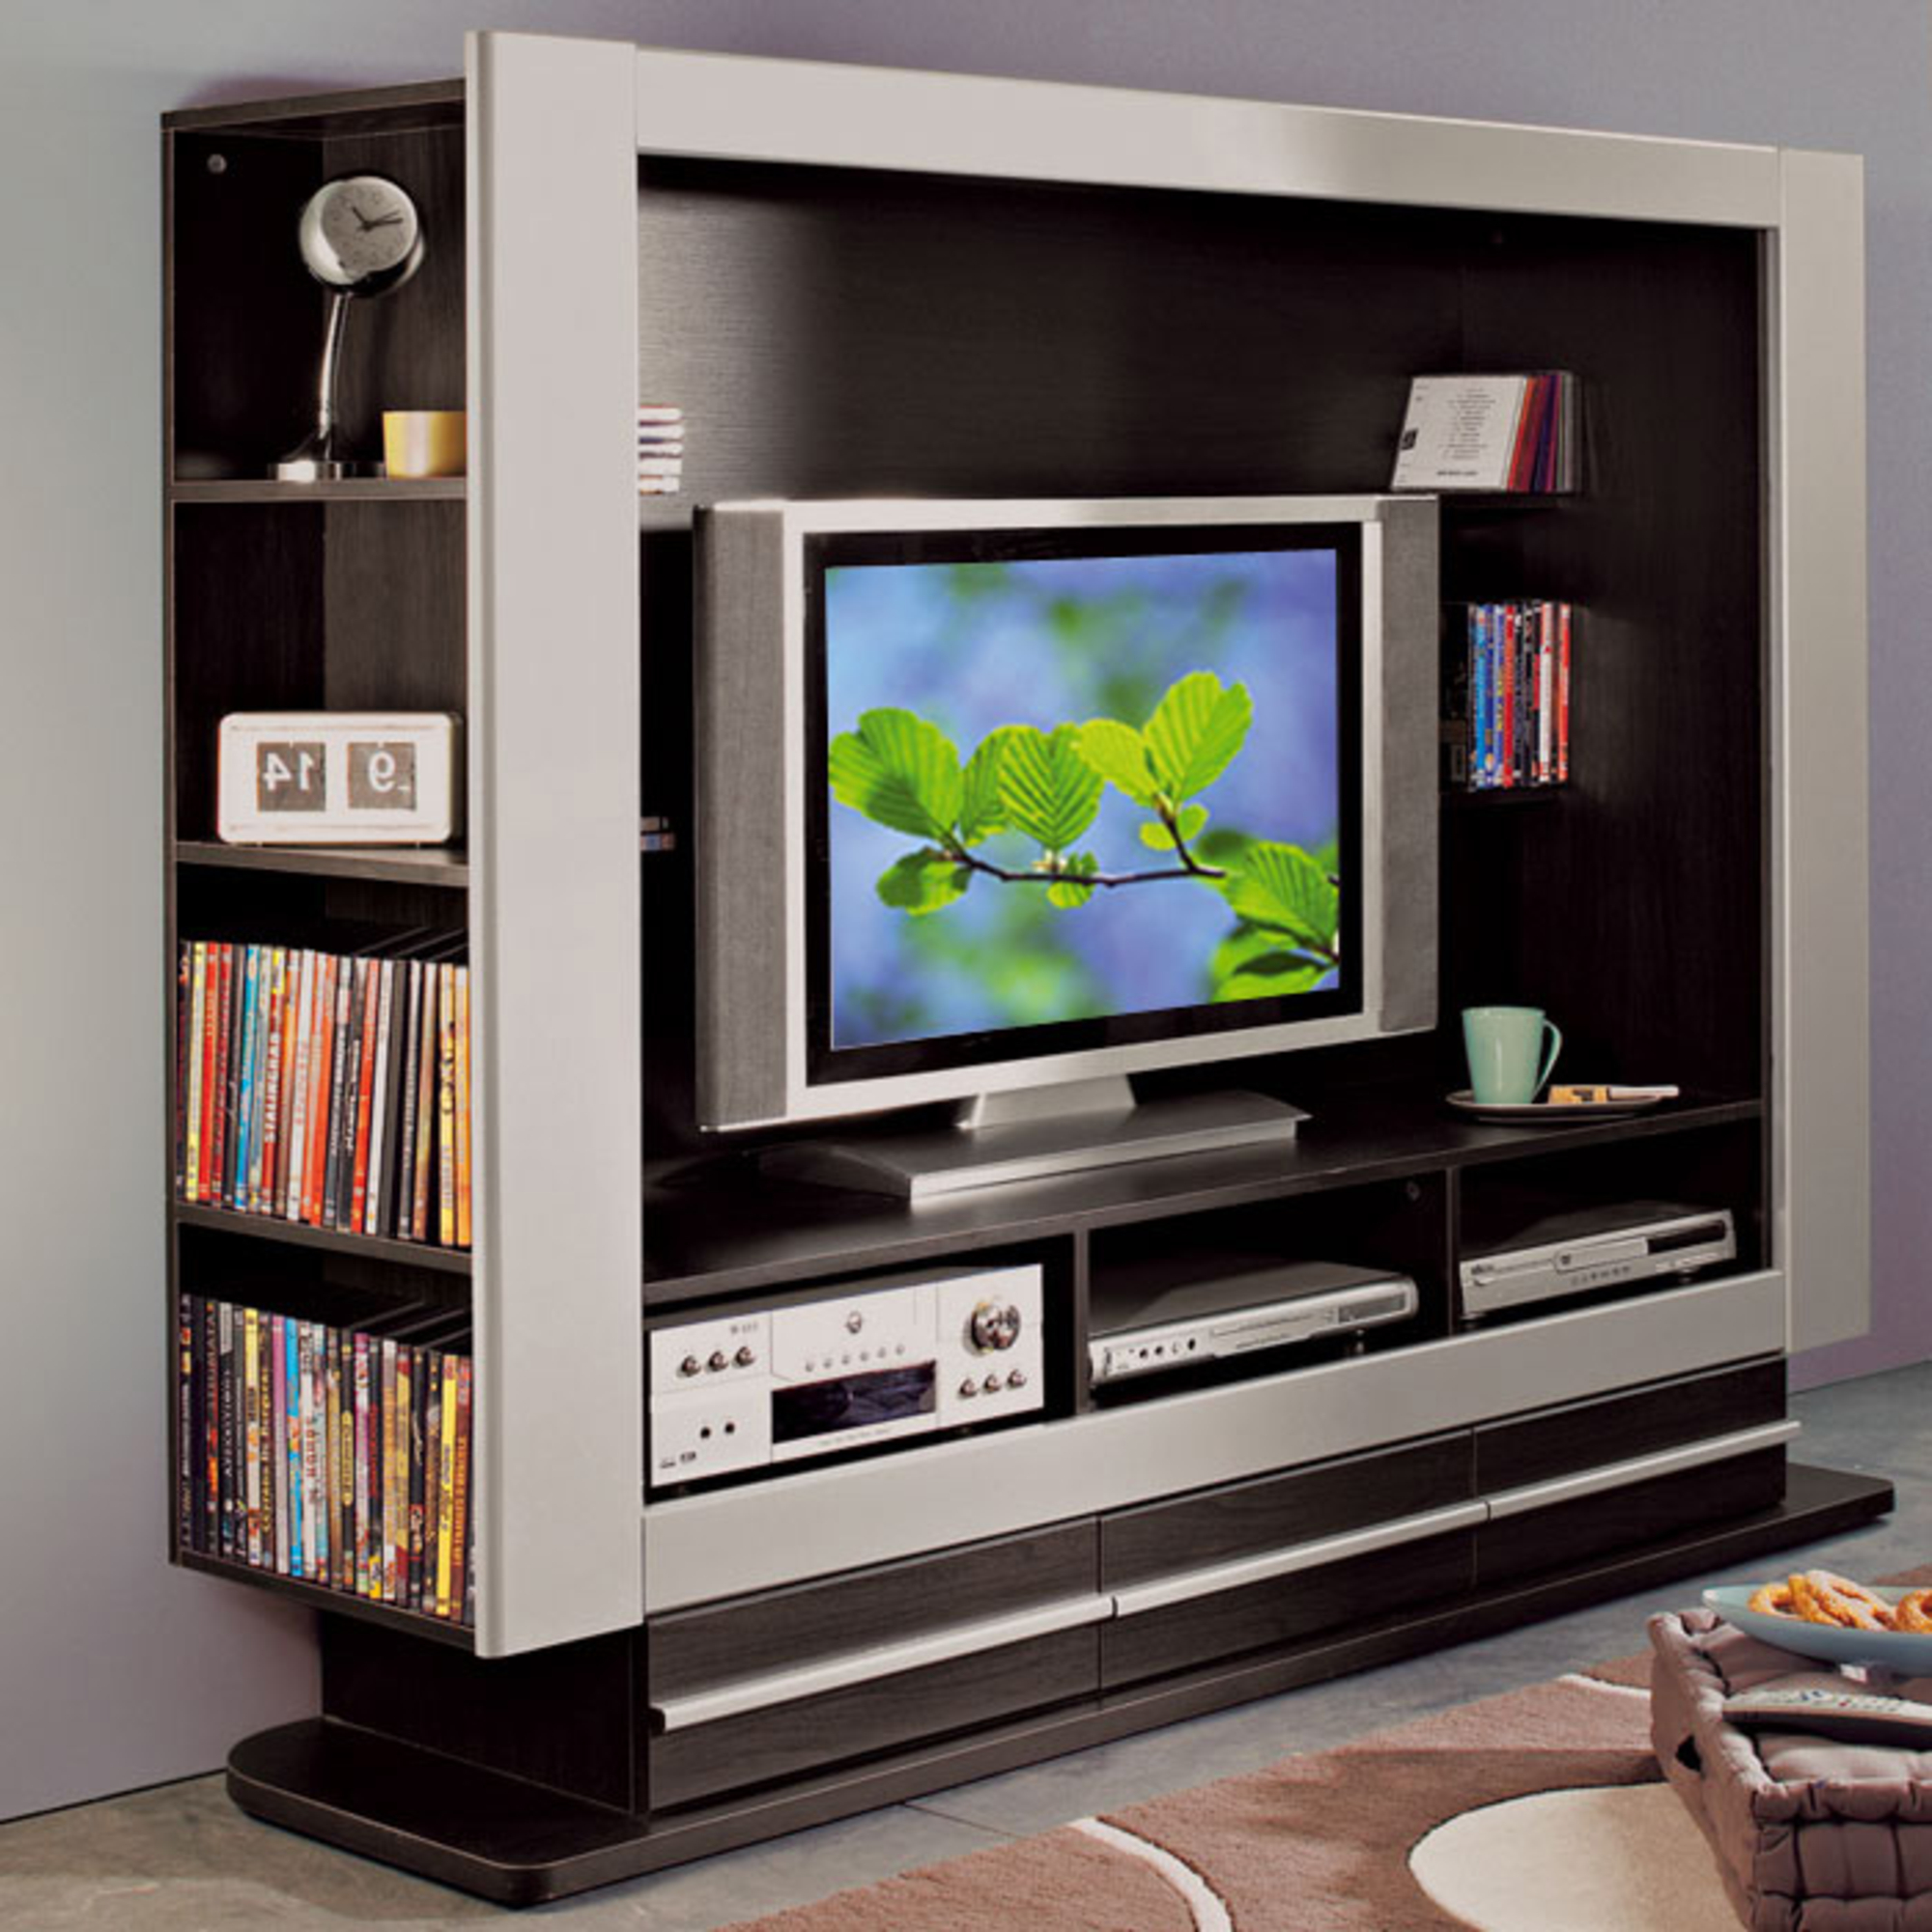 meuble tv sp cial cran plat sidney weng anniversaire. Black Bedroom Furniture Sets. Home Design Ideas